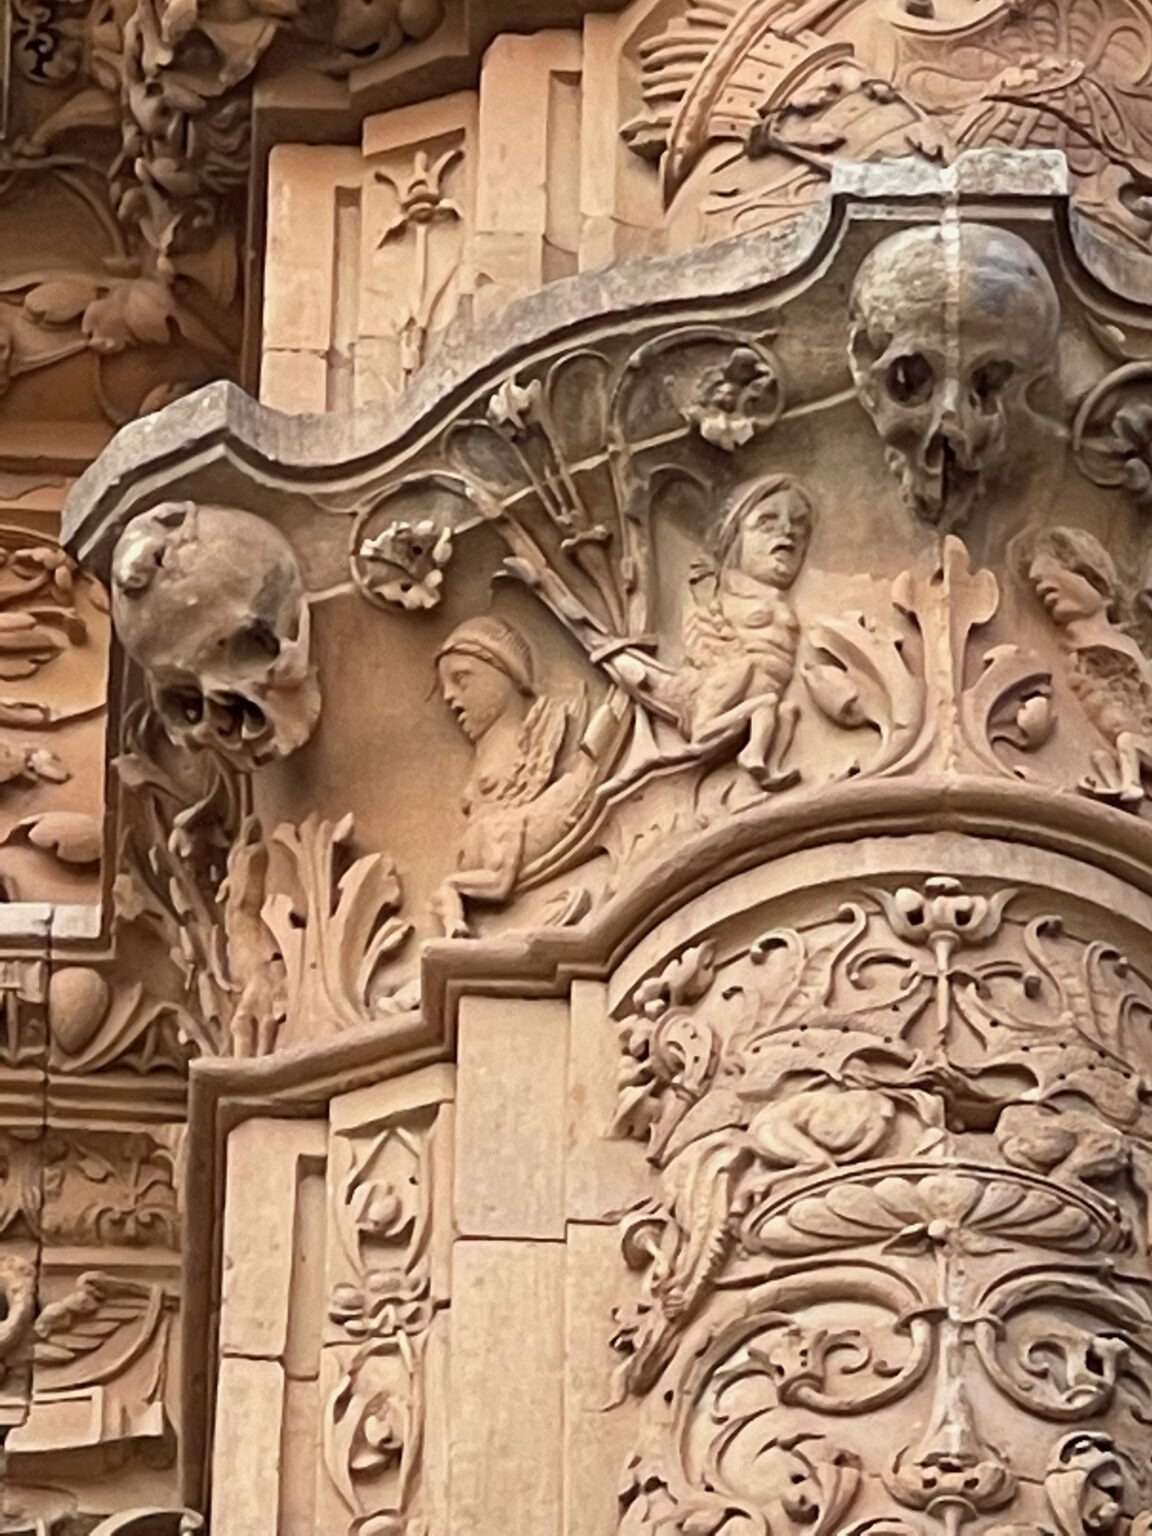 Details in the carved marble facade of the Cathedral in Salamanca.